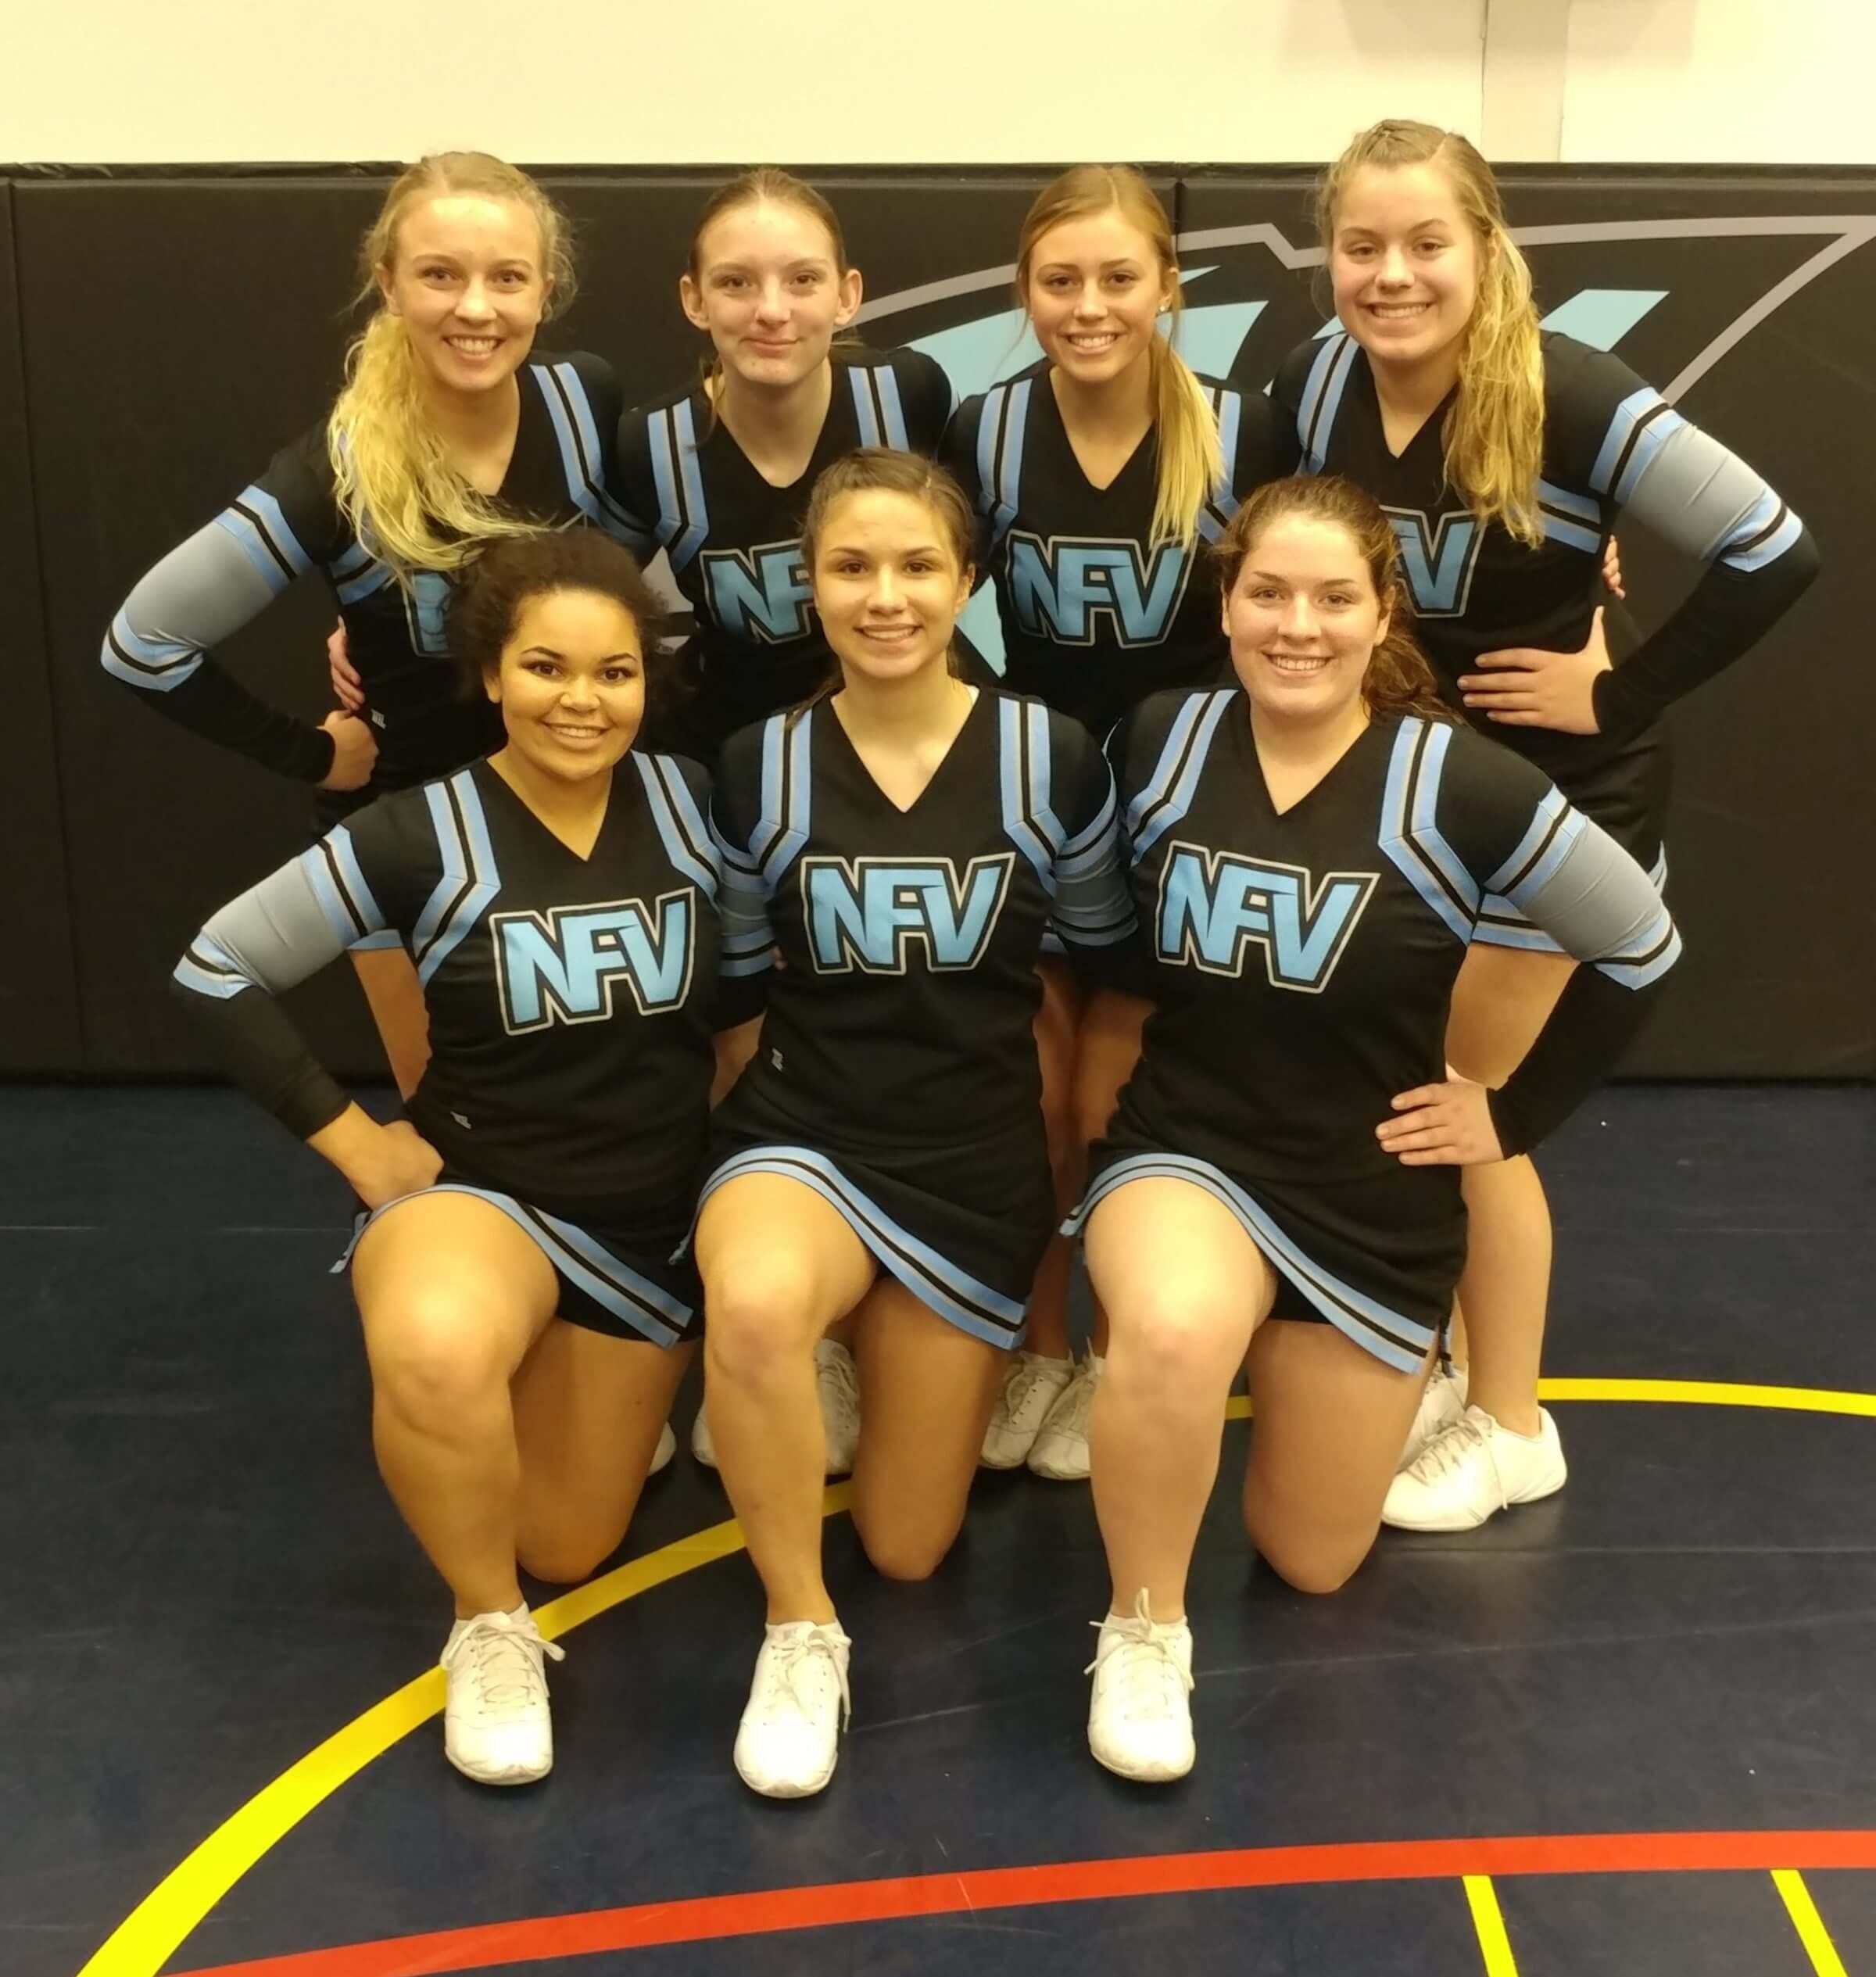 2018 NFV High School Wrestling Cheerleaders